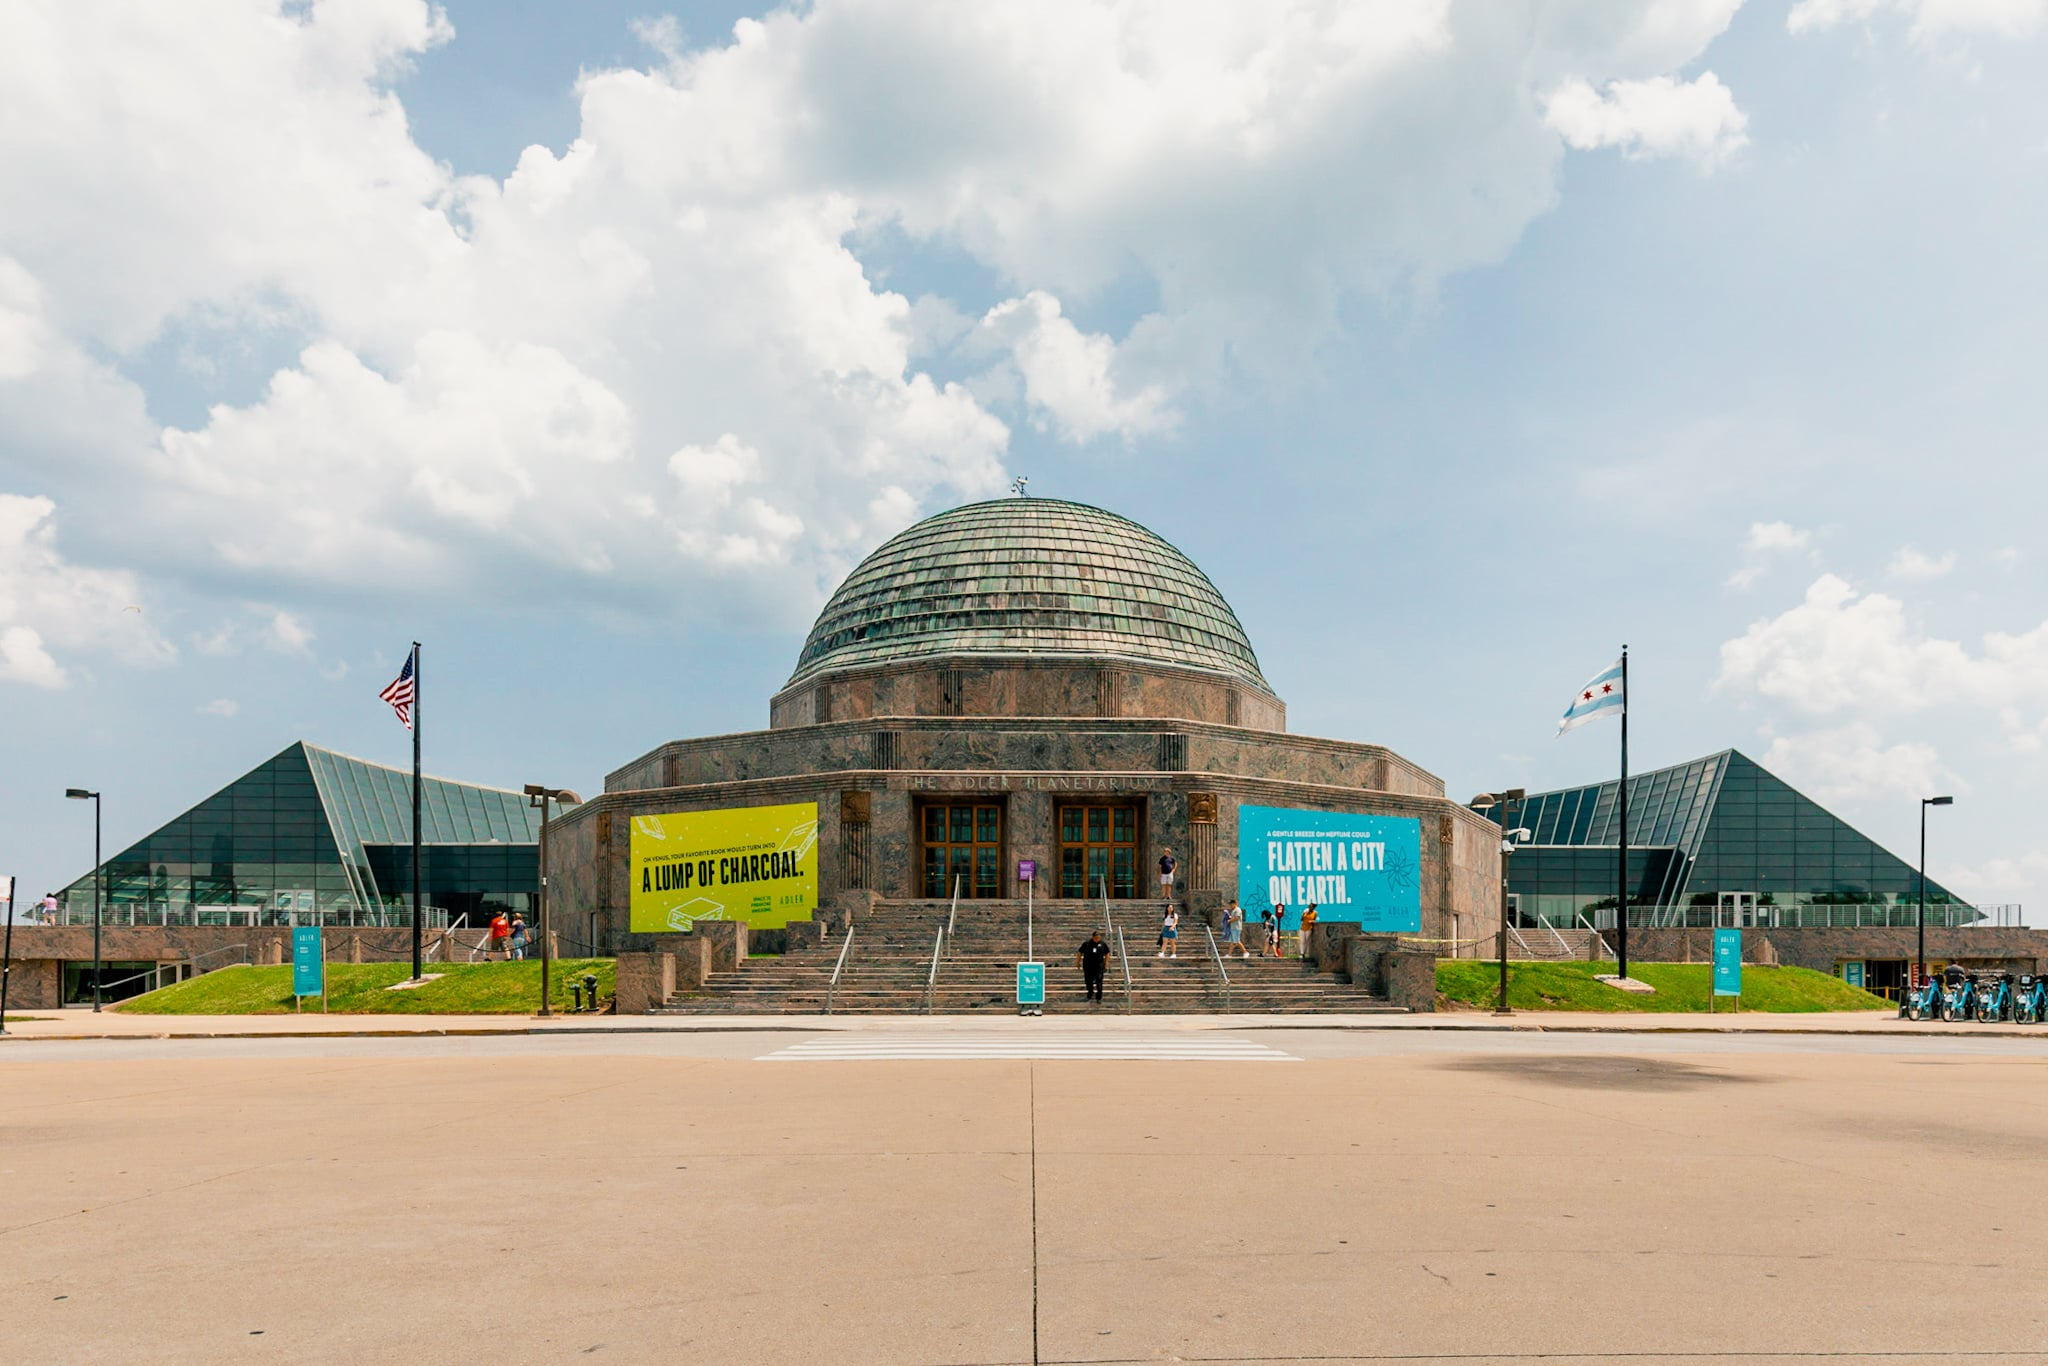 Chicago City Pass Adler Planetarium